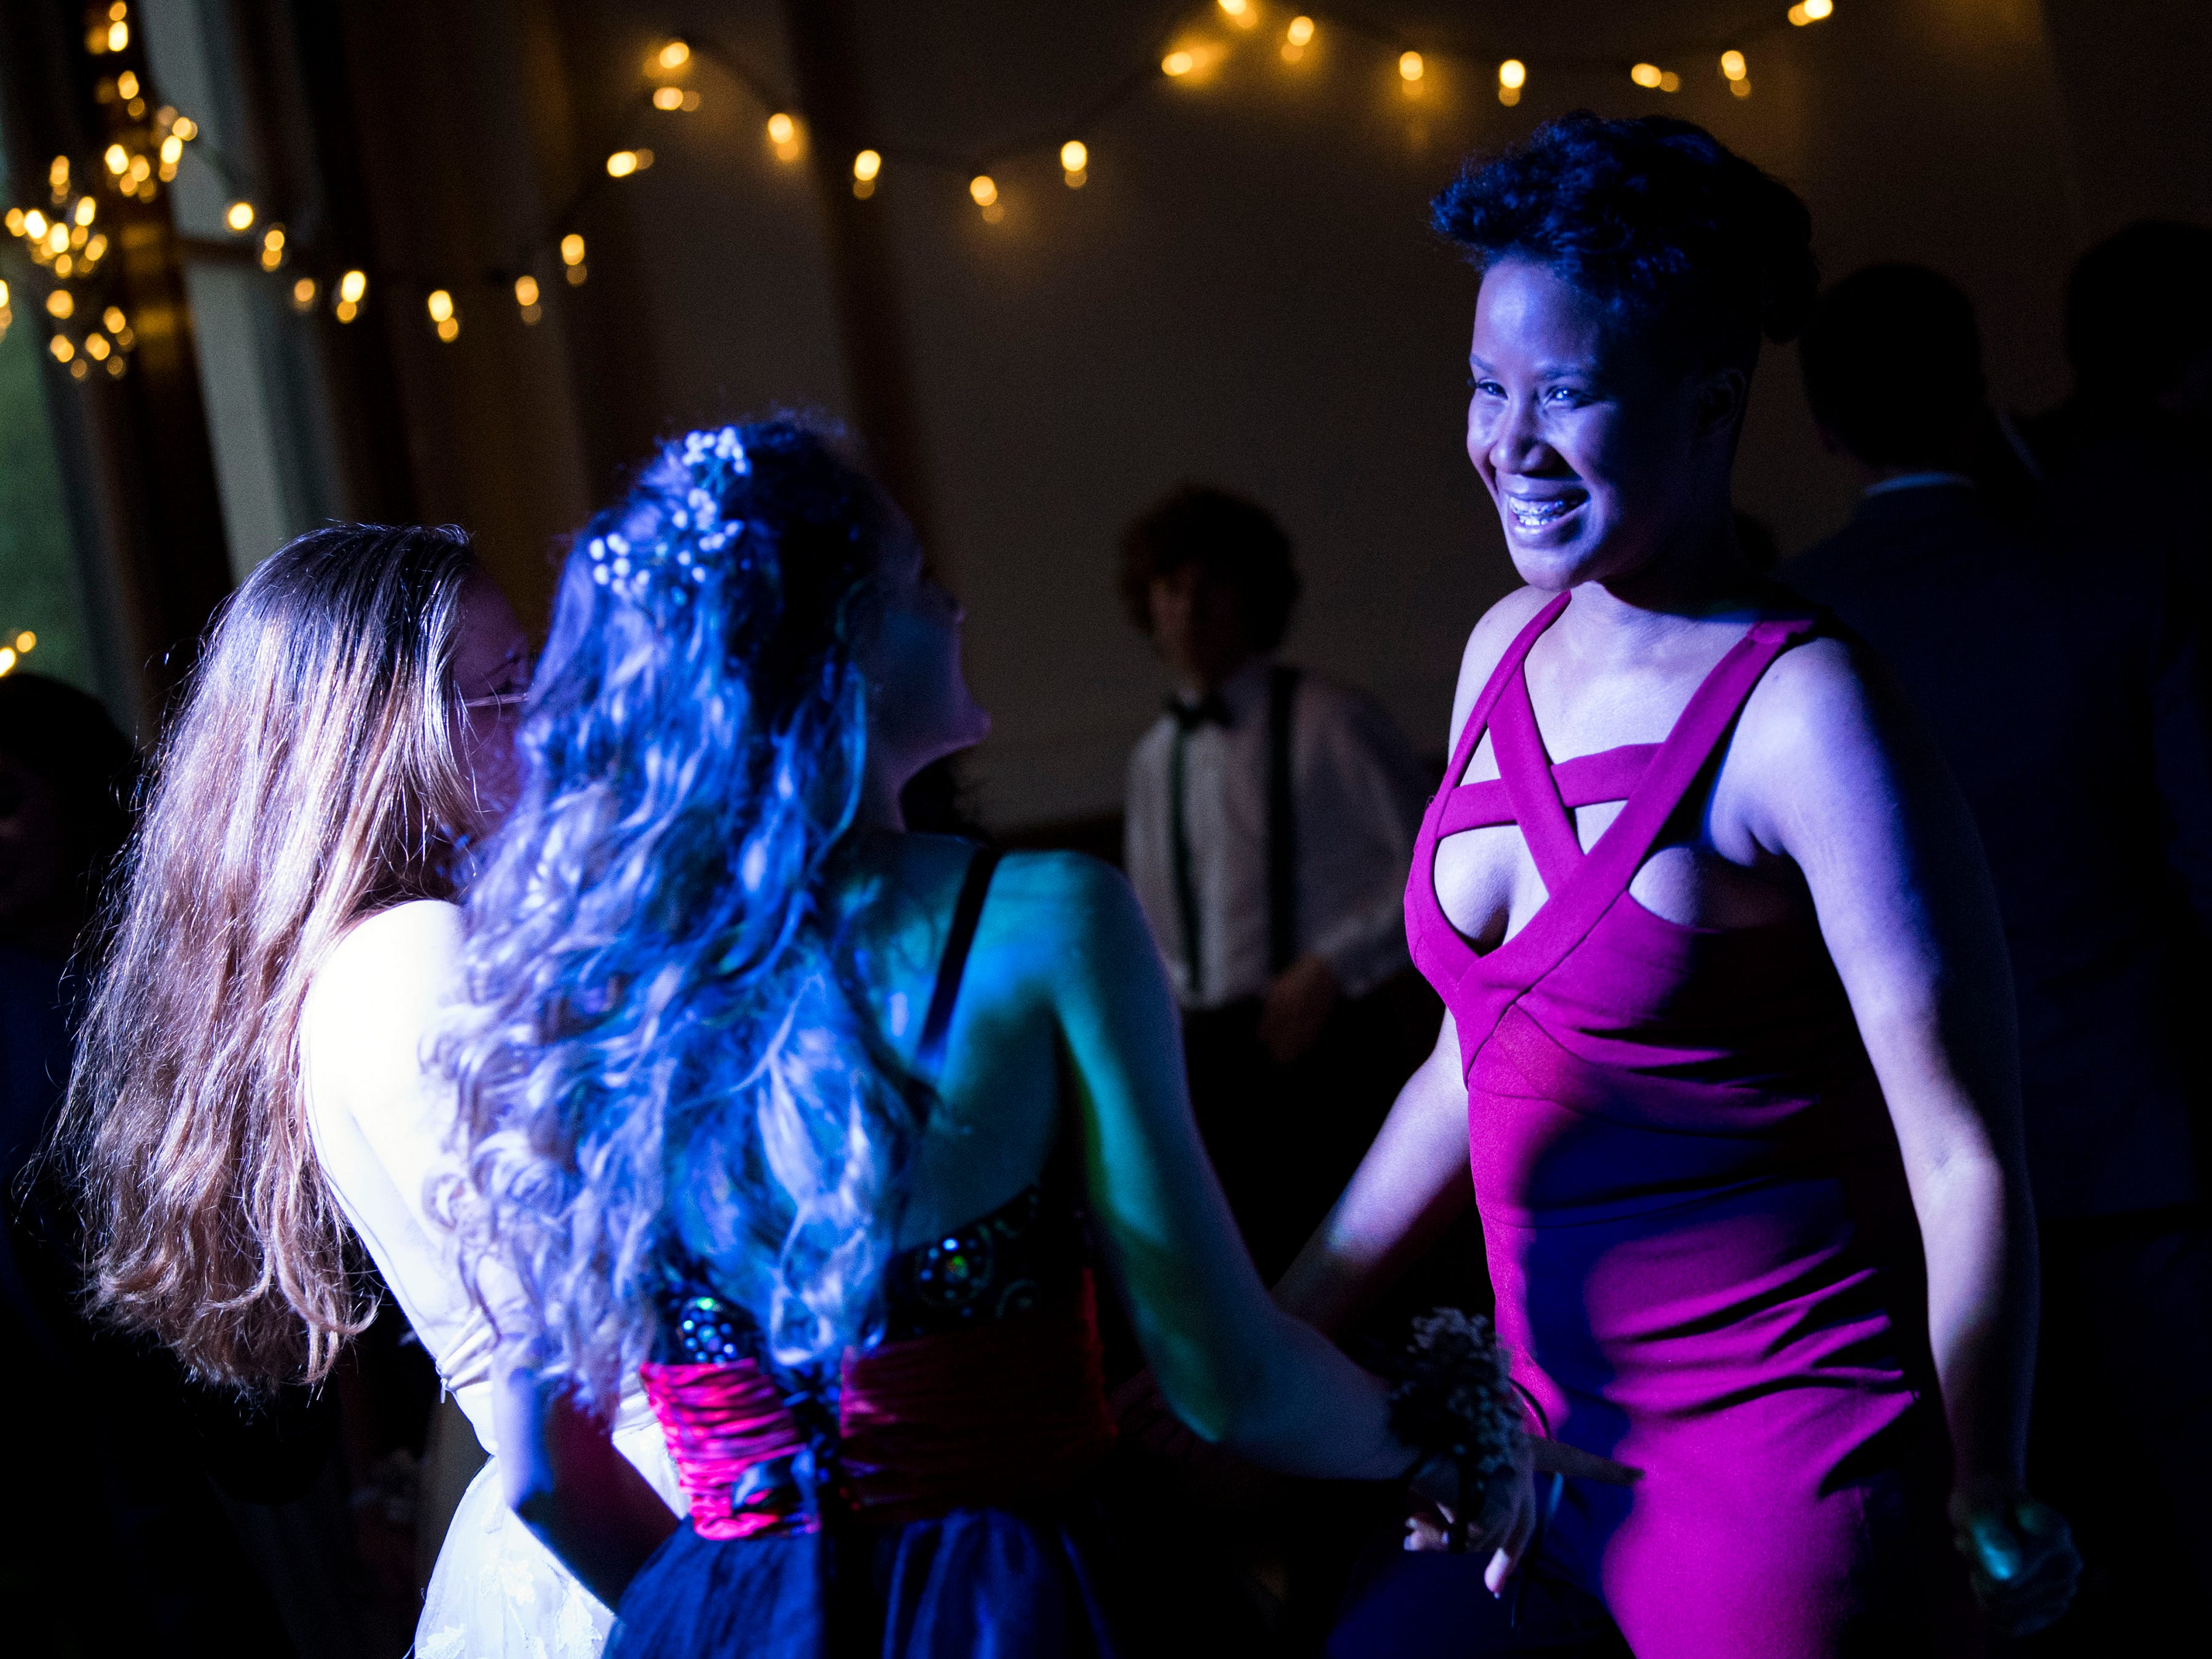 Scenes from L&N Stem Academy's prom held at Southern Railway in downtown Knoxville on Saturday, April 13, 2019.